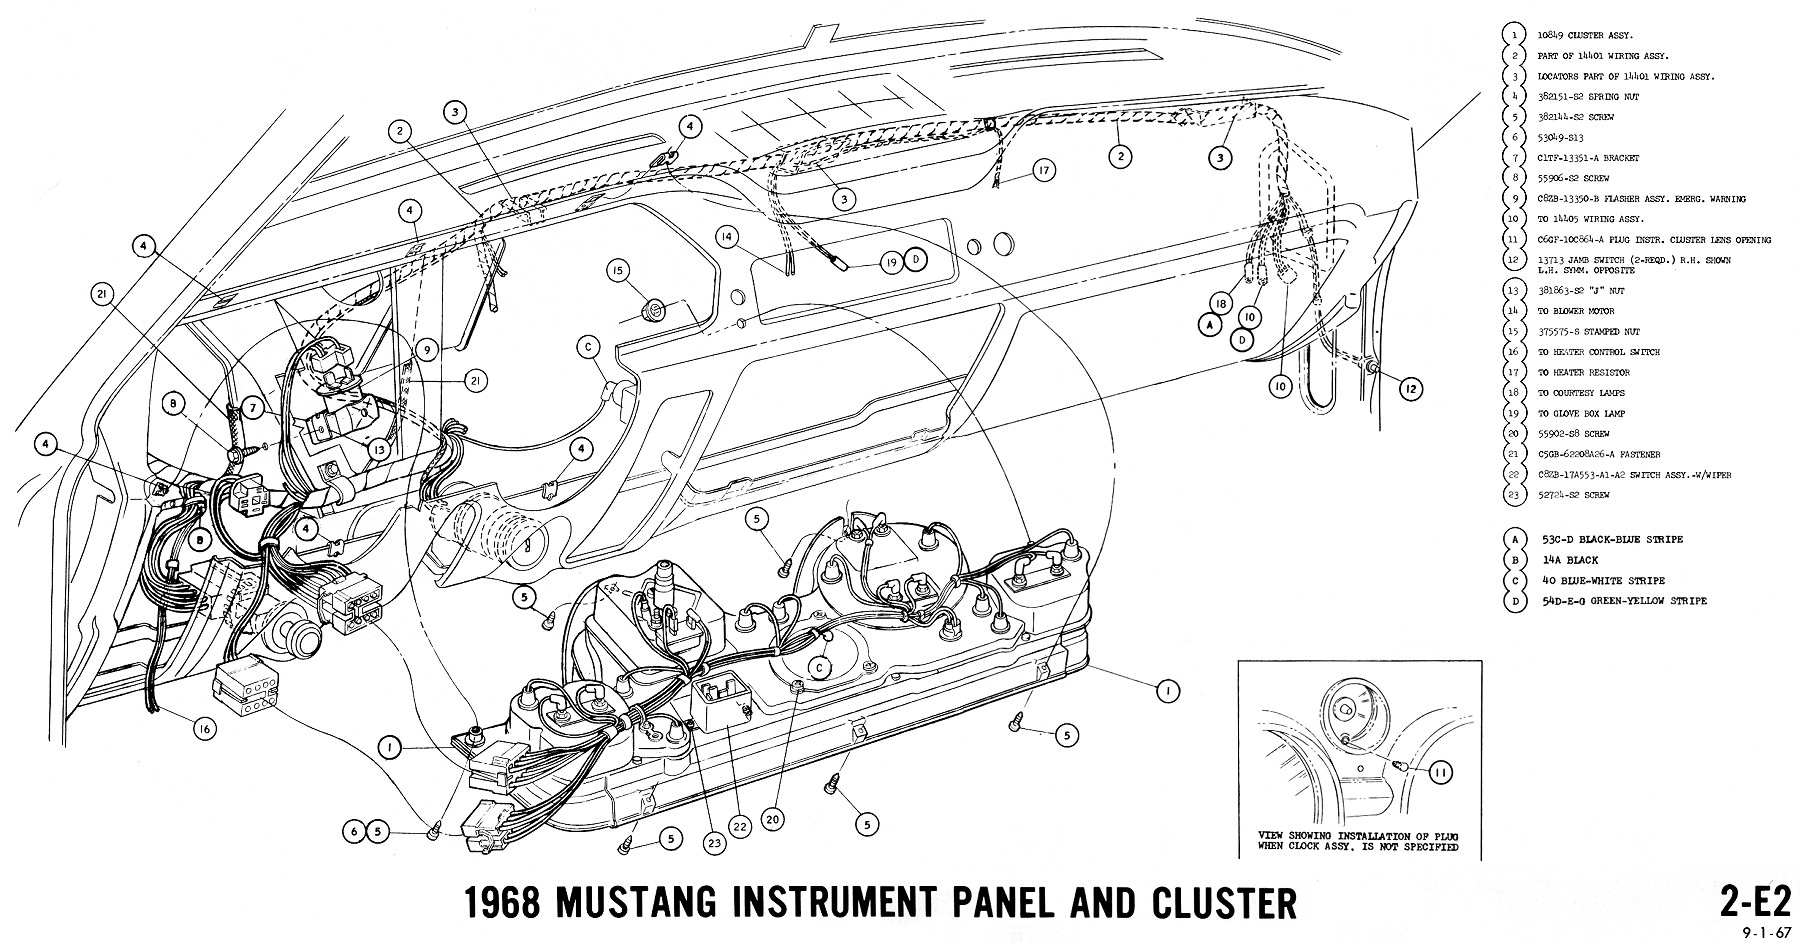 hight resolution of 1968 mustang wiring diagrams and vacuum schematics average joe 2006 ranger wiring diagram 1968 mustang wiring